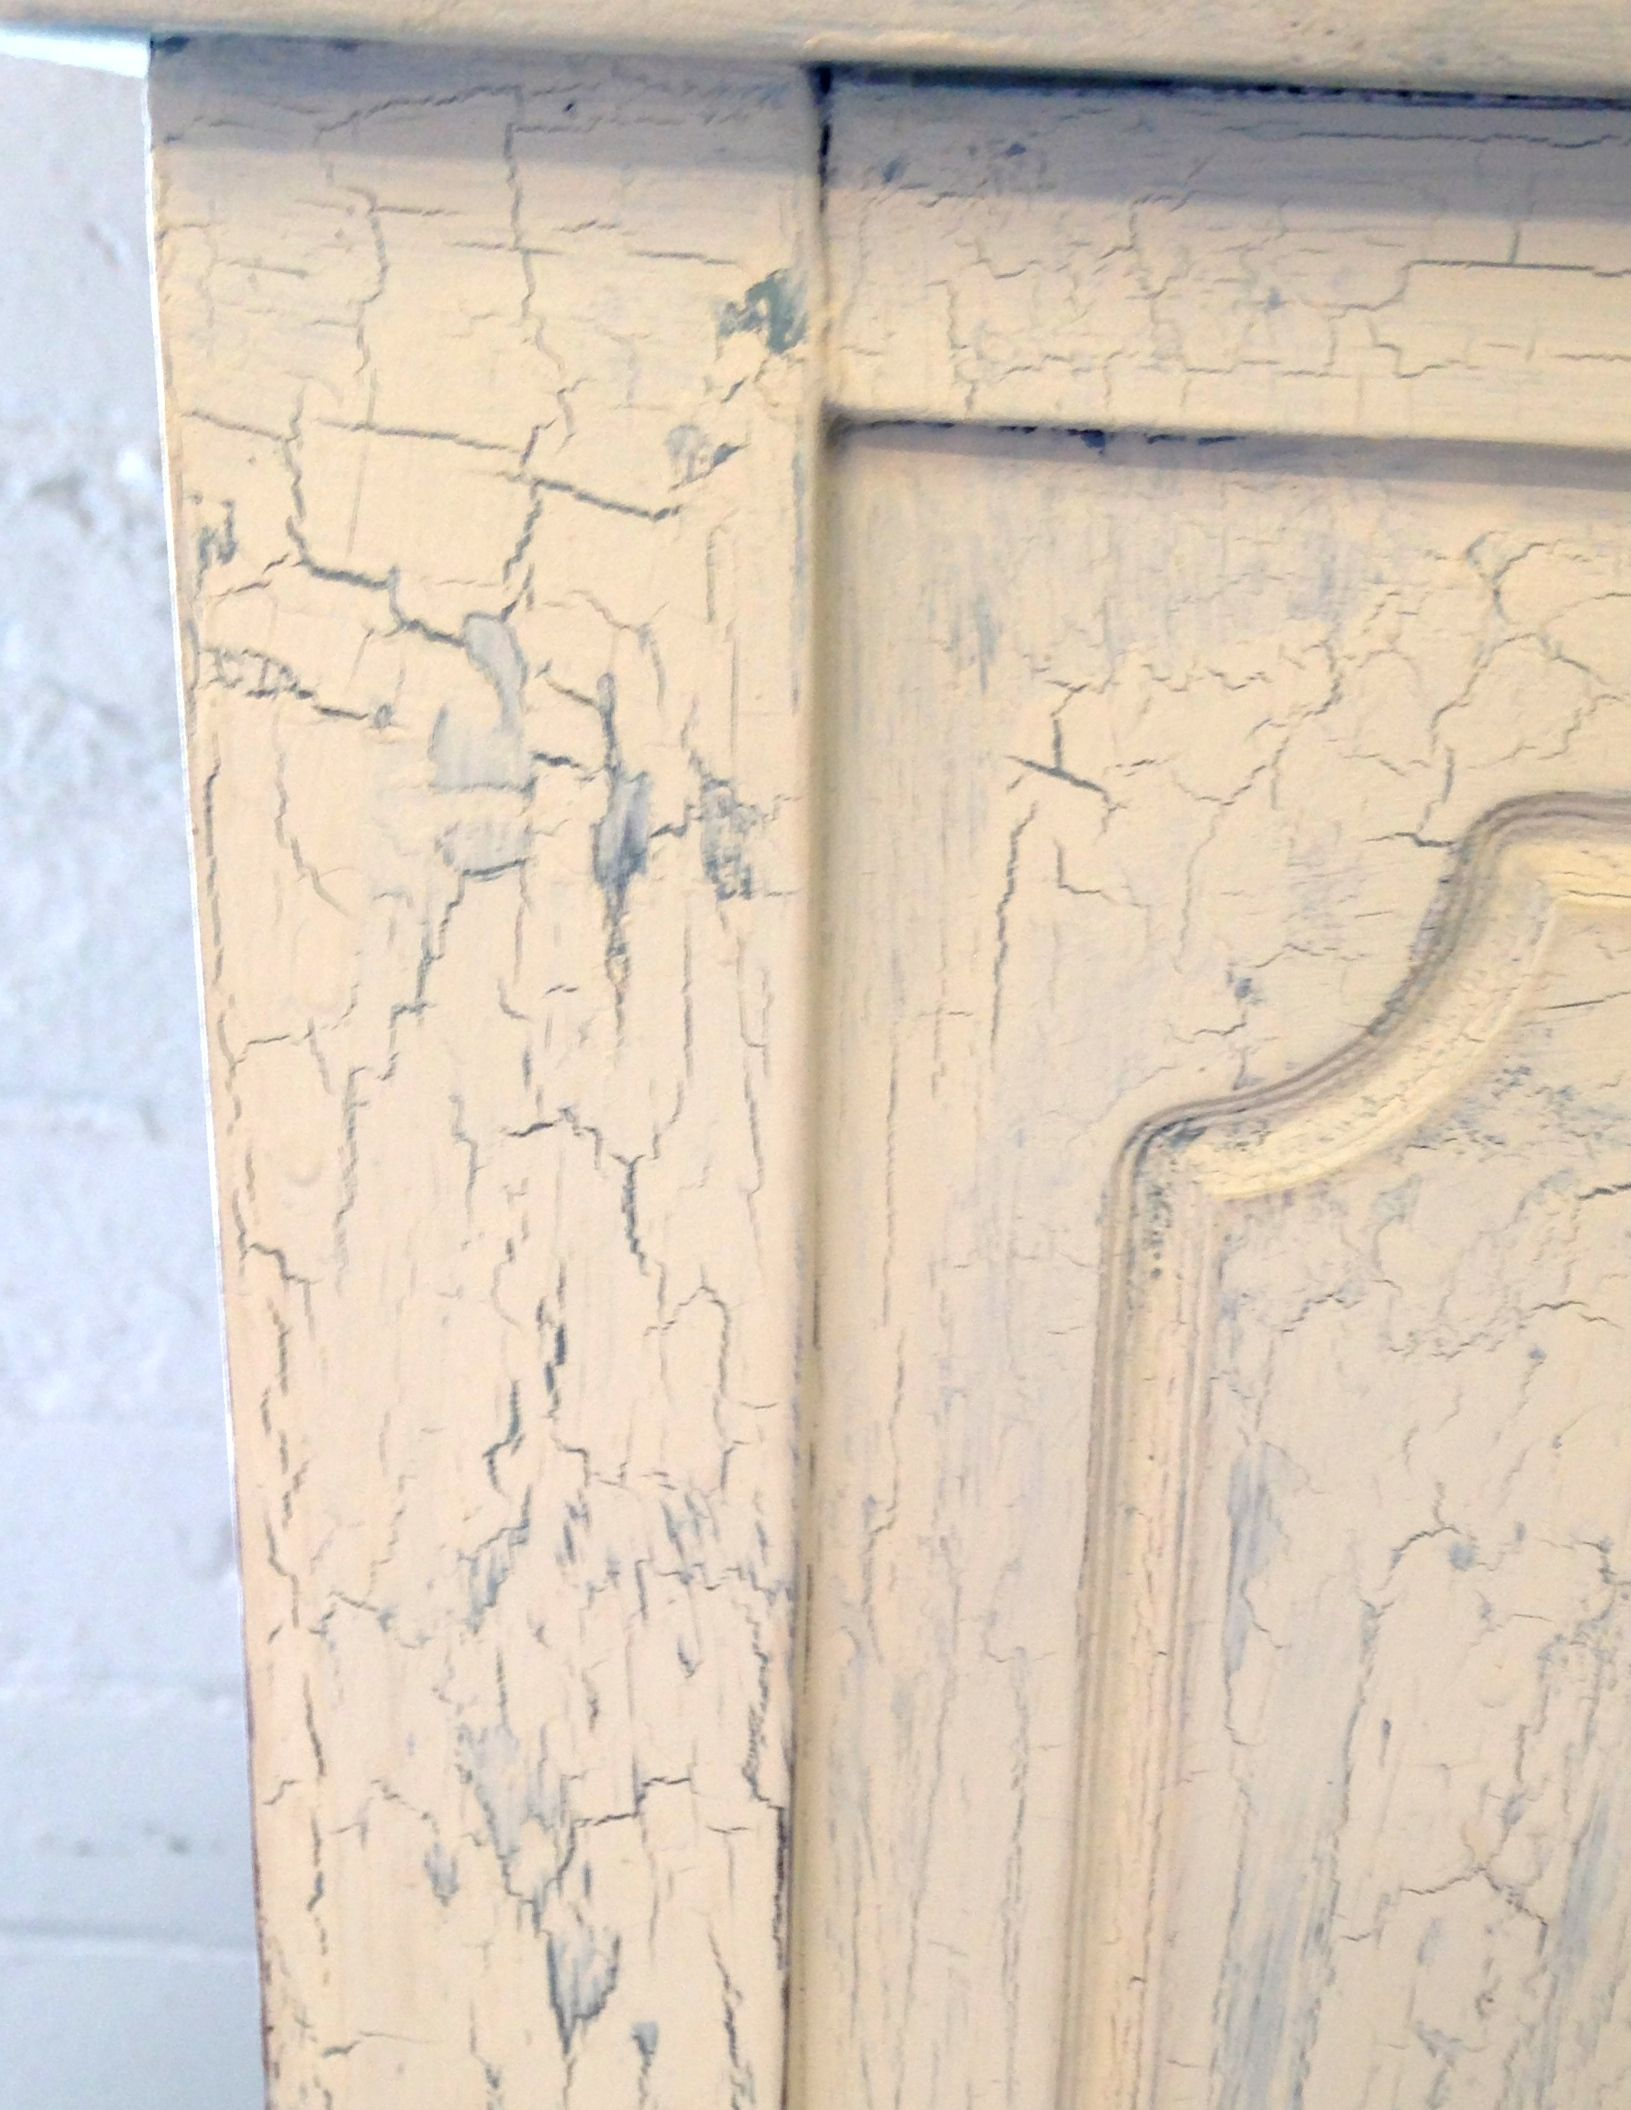 Painted Furniture Crackle Finish Tutorial New House New Home Crackle Painting Painted Furniture Crackle Furniture